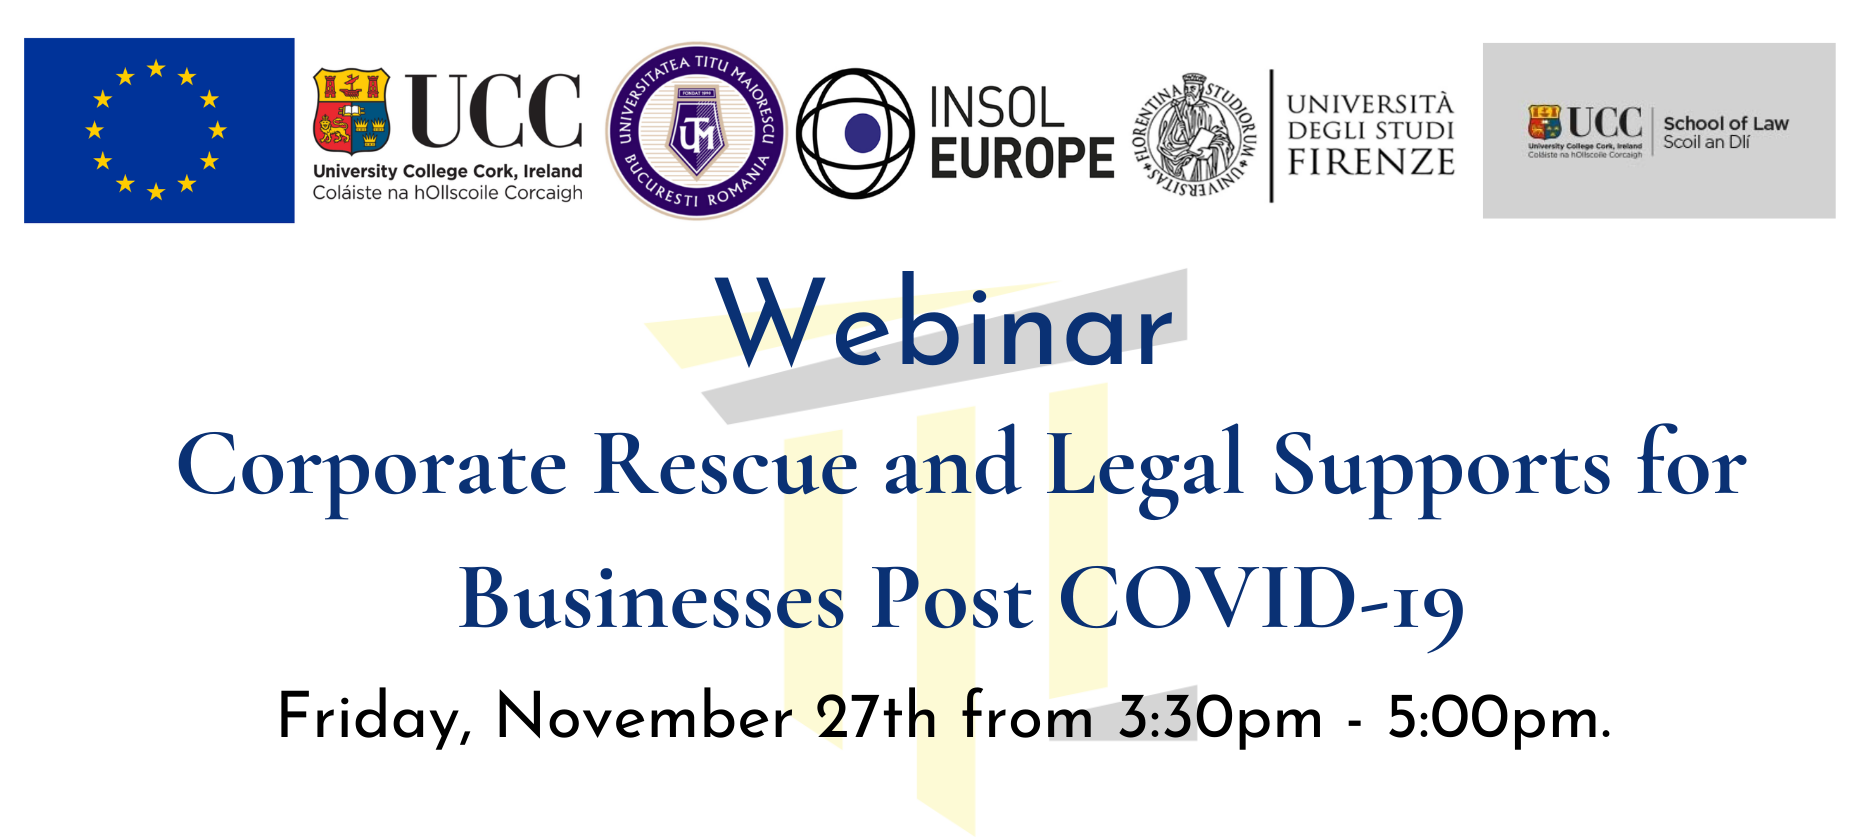 Project Webinar: Corporate Rescue and Legal Supports for Businesses Post COVID-19